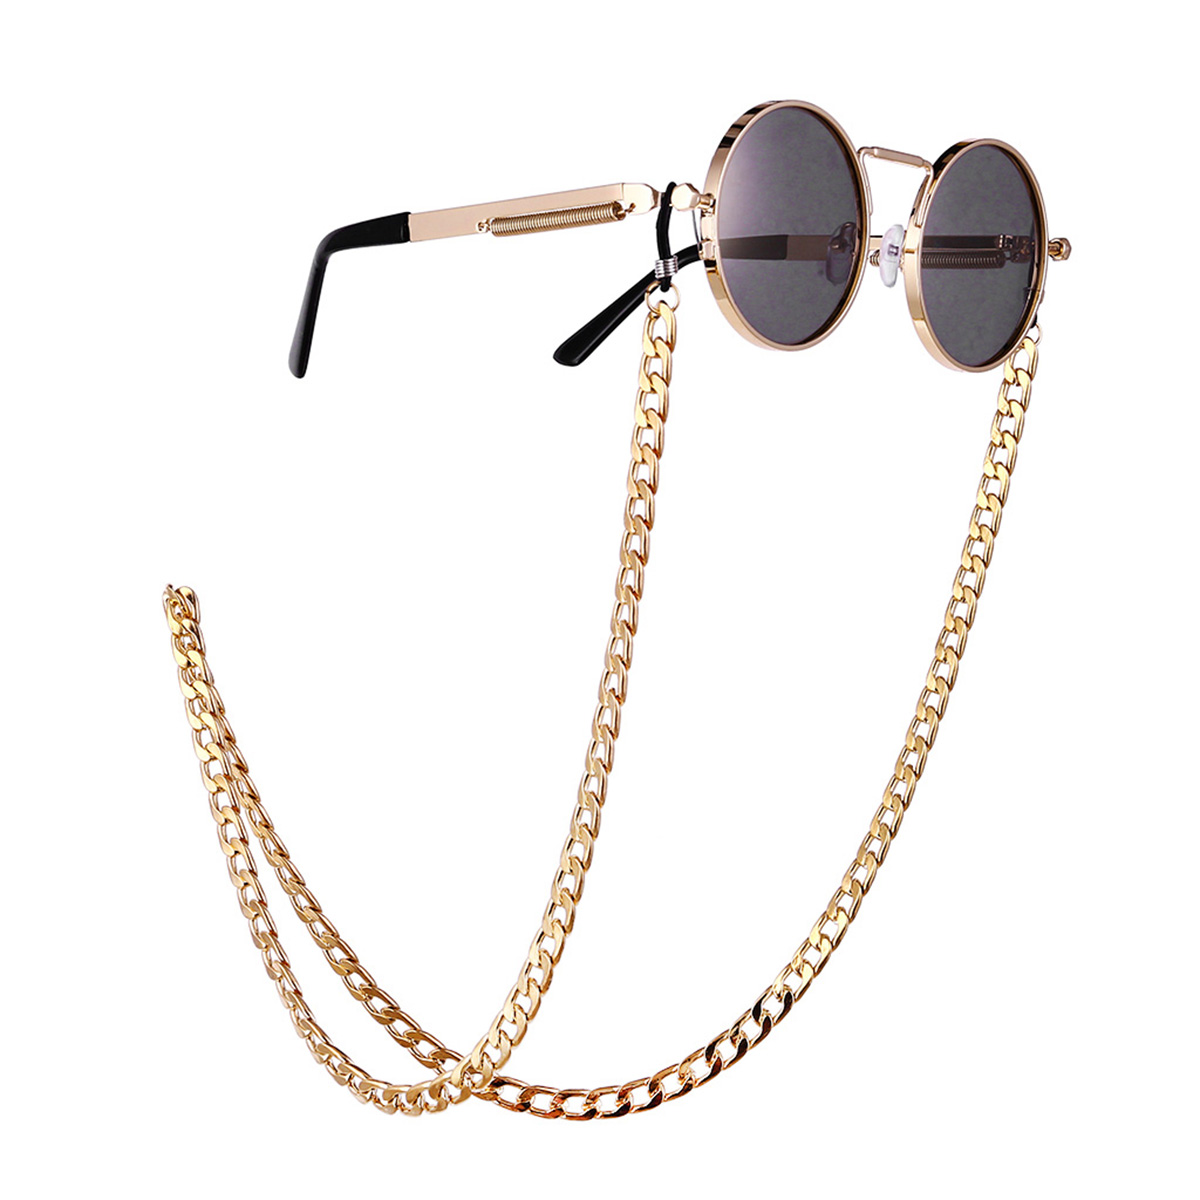 Glasses Chain Jewelry Hip Hop Style Punk Cool With Thick Gold Exaggerated Glasses Chain 2019